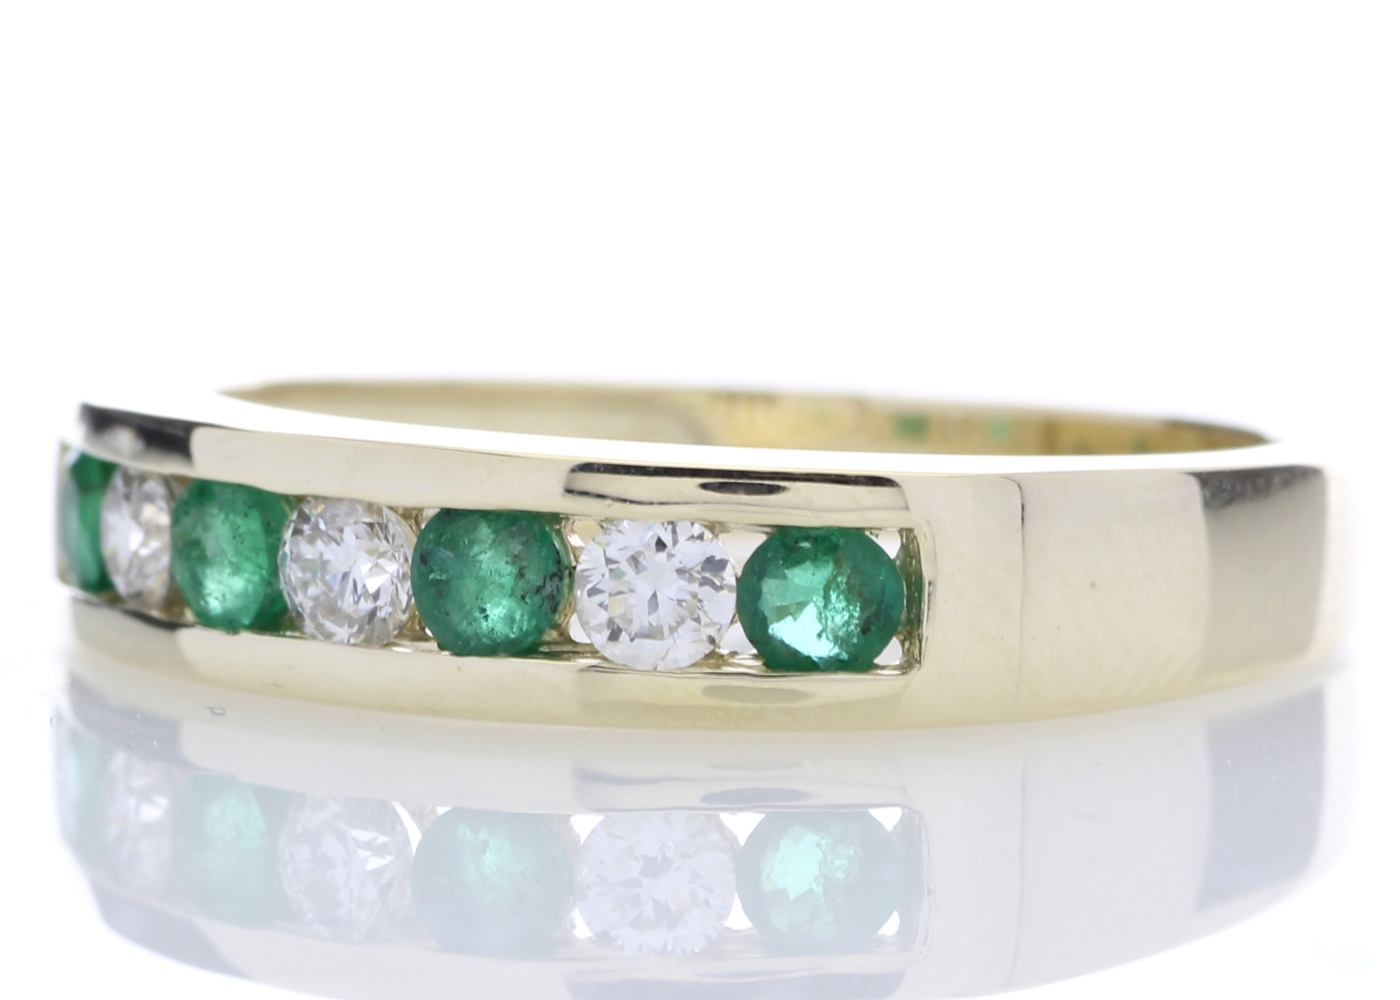 9ct Yellow Gold Channel Set Semi Eternity Diamond And Emerald Ring 0.25 Carats - Image 2 of 5